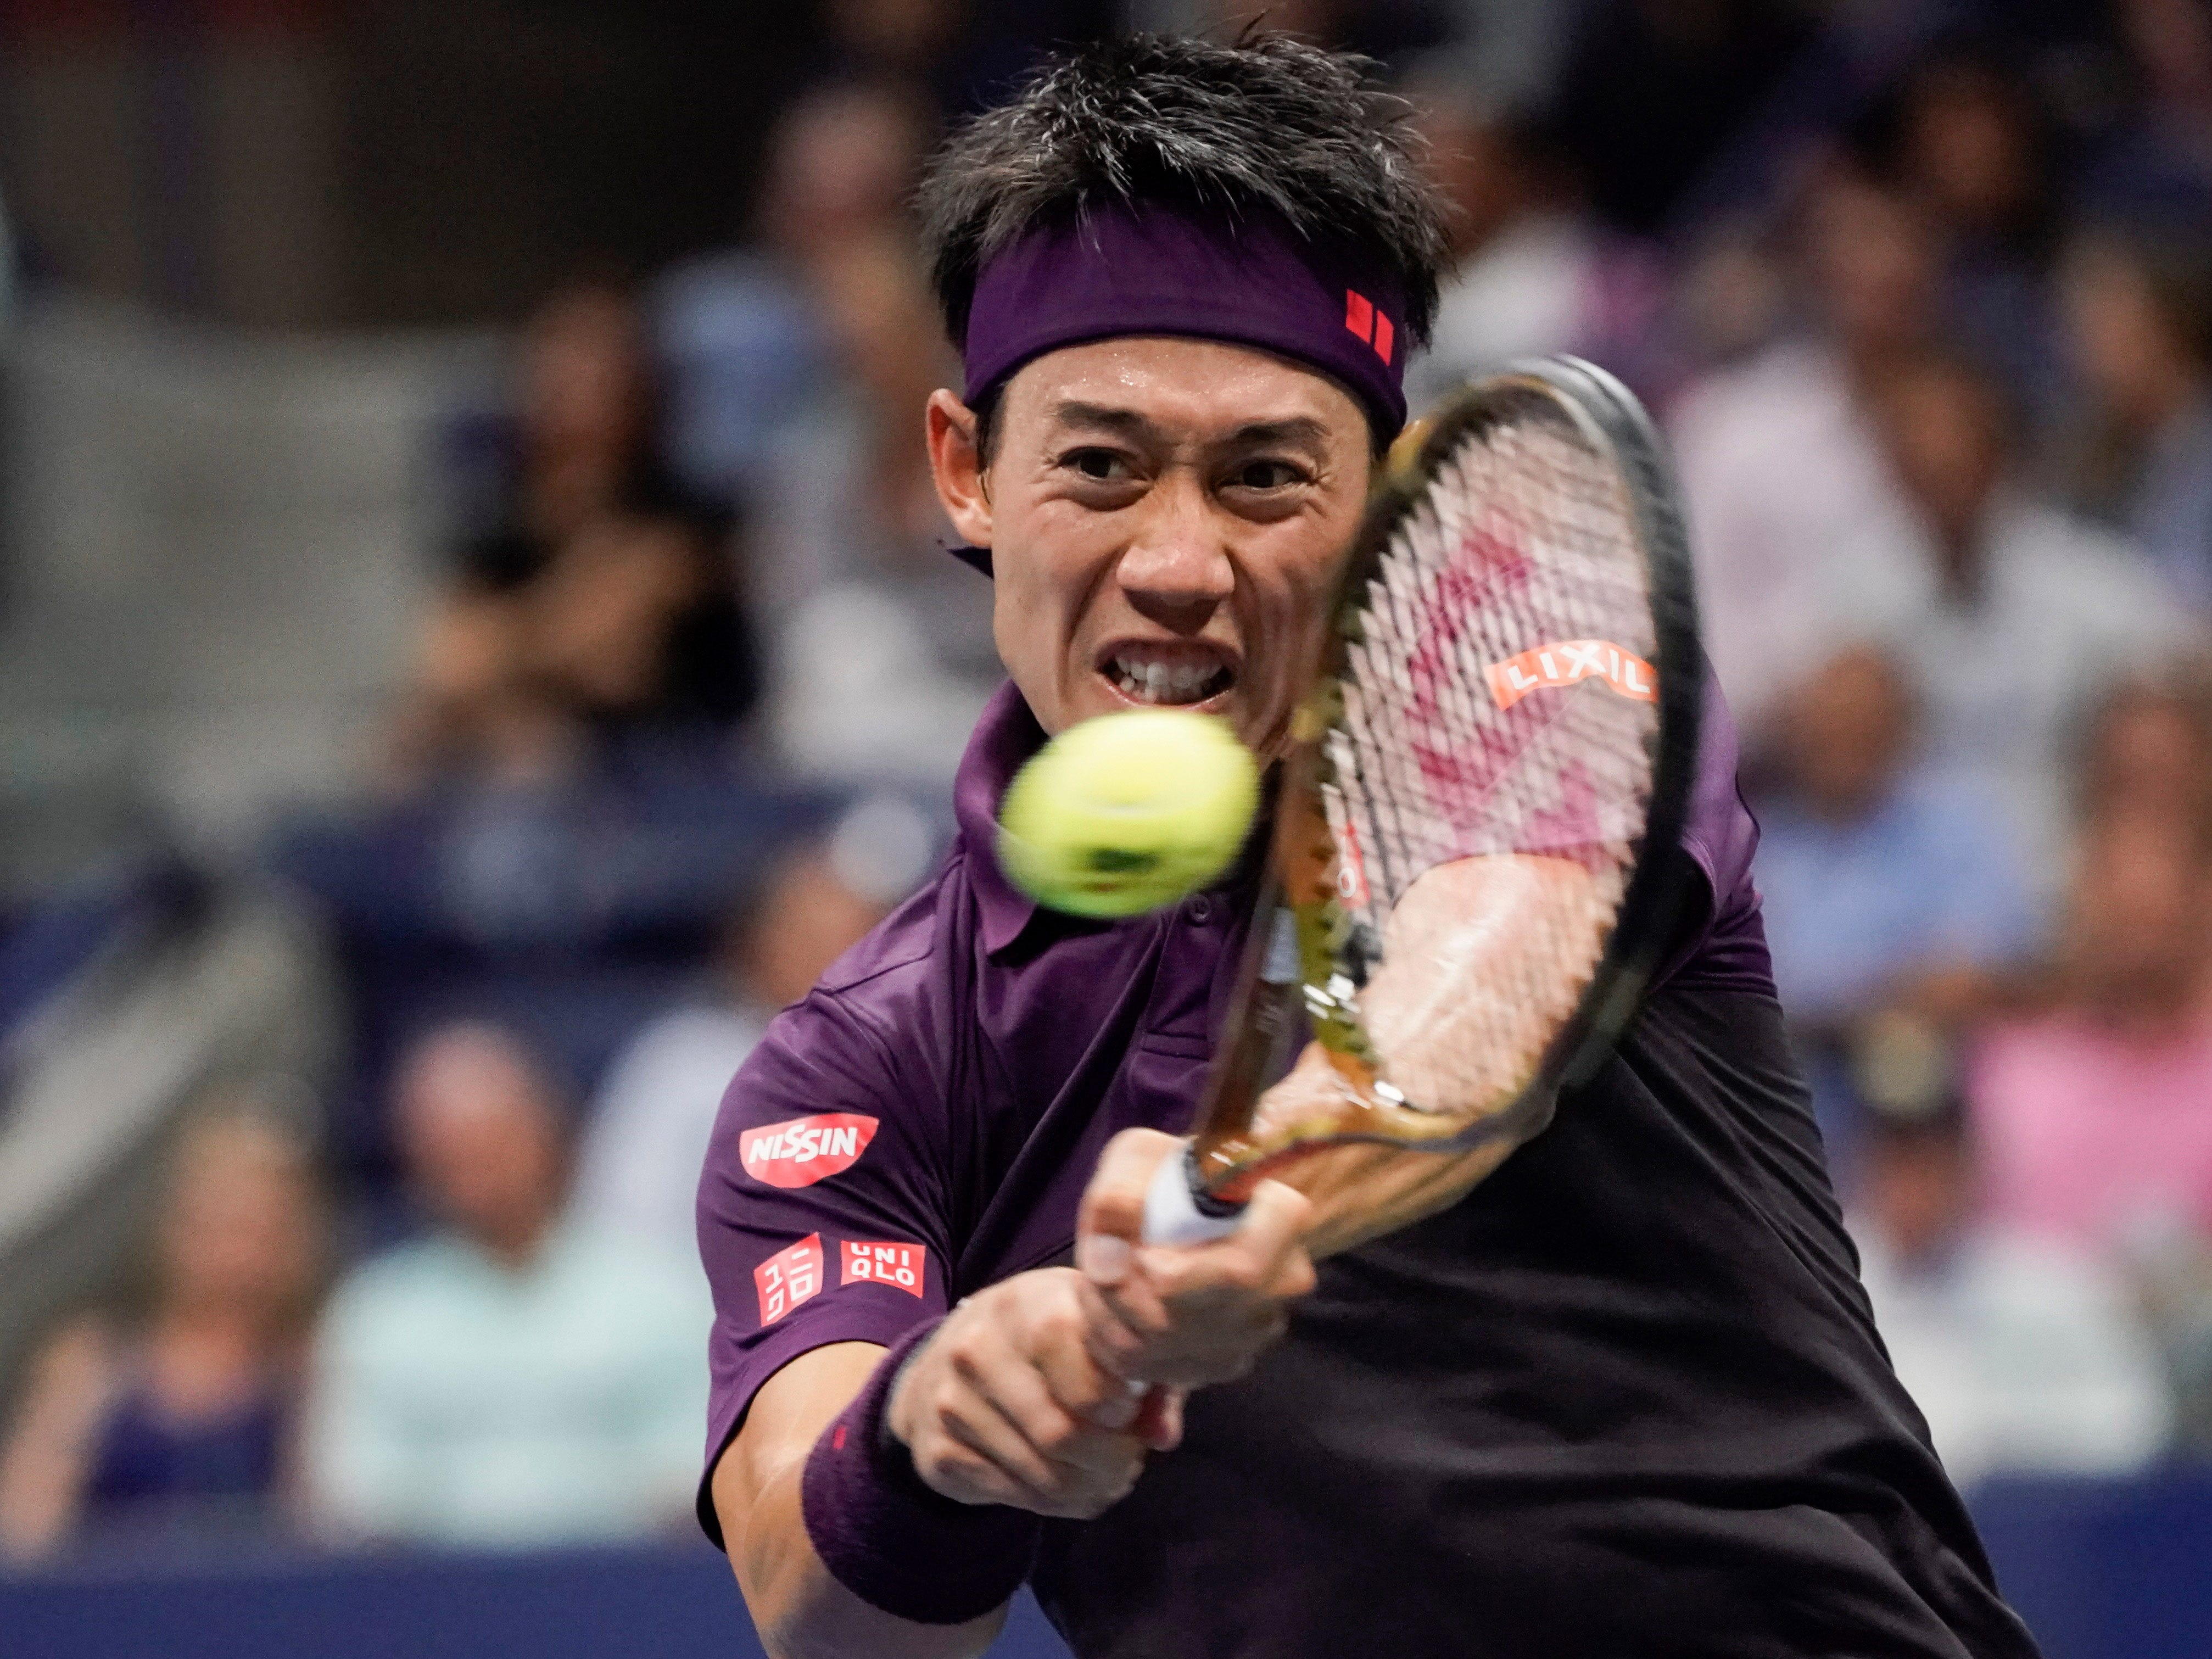 Kei Nishikori of Japan hits to Novak Djokovic of Serbia.